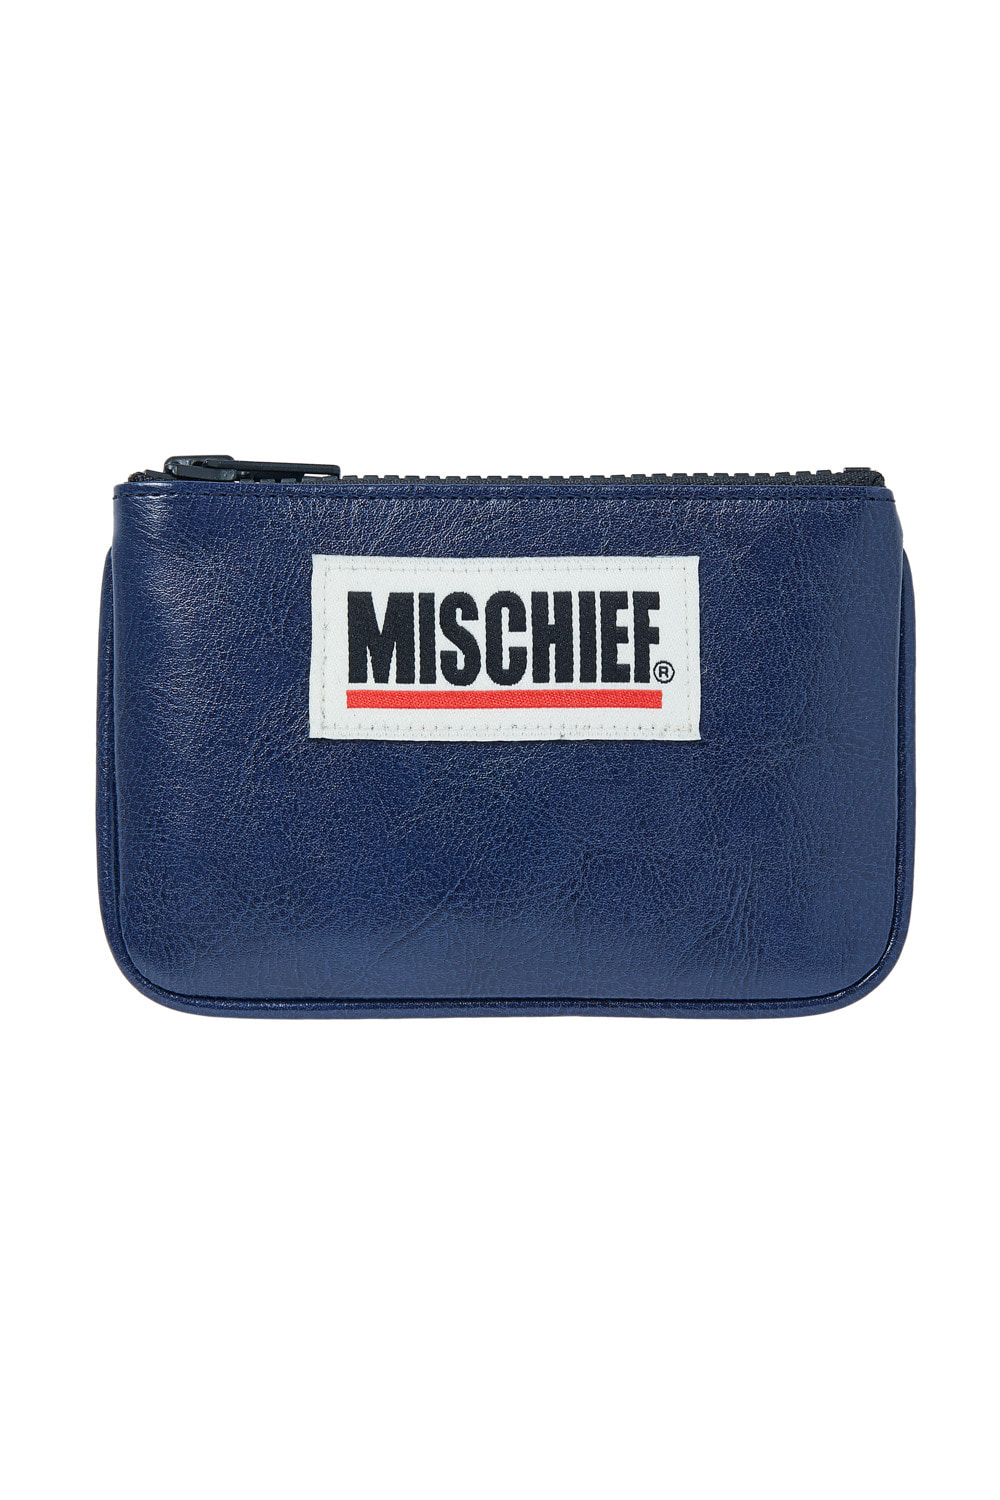 MINI ZIP WALLET_navy